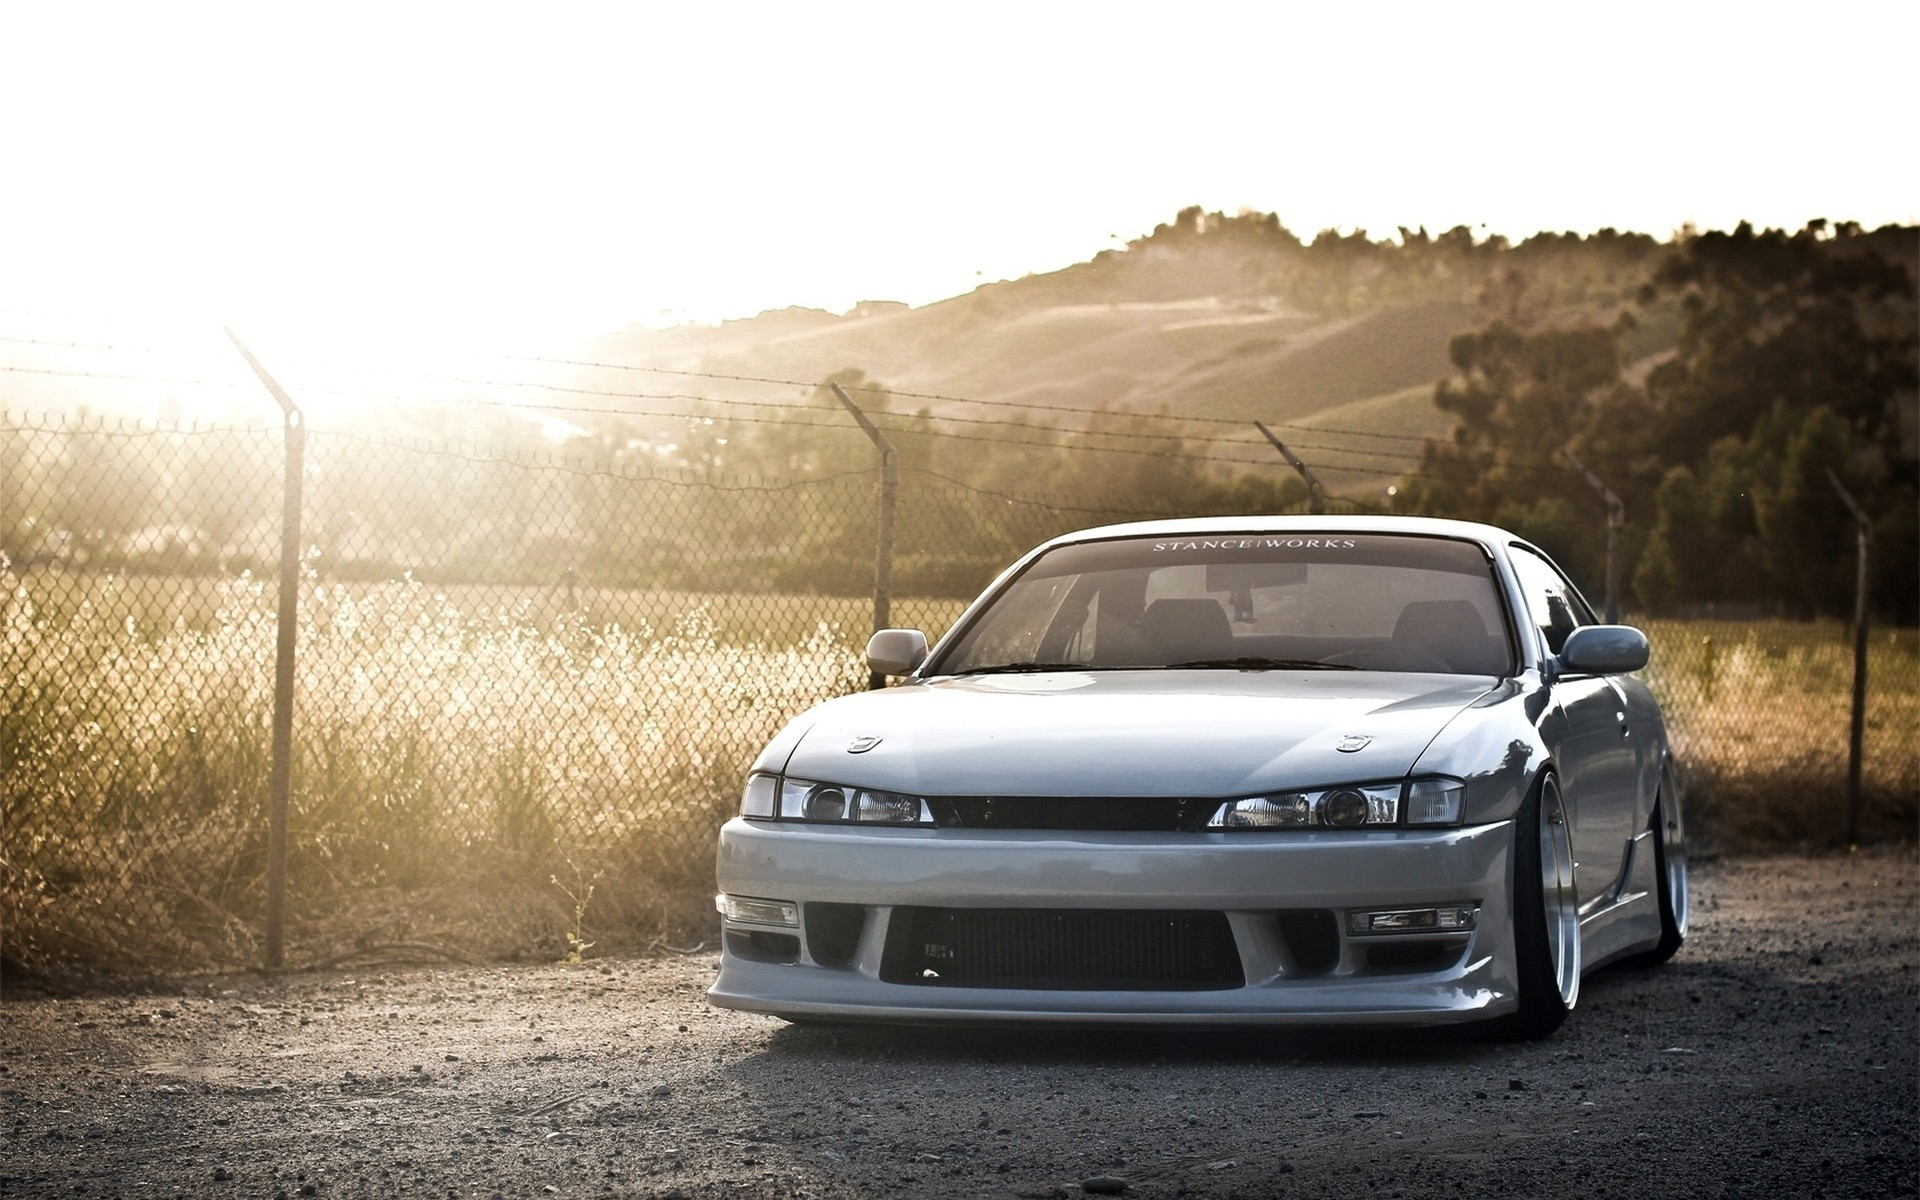 1920x1200 - Nissan Silvia S14 Wallpapers 13